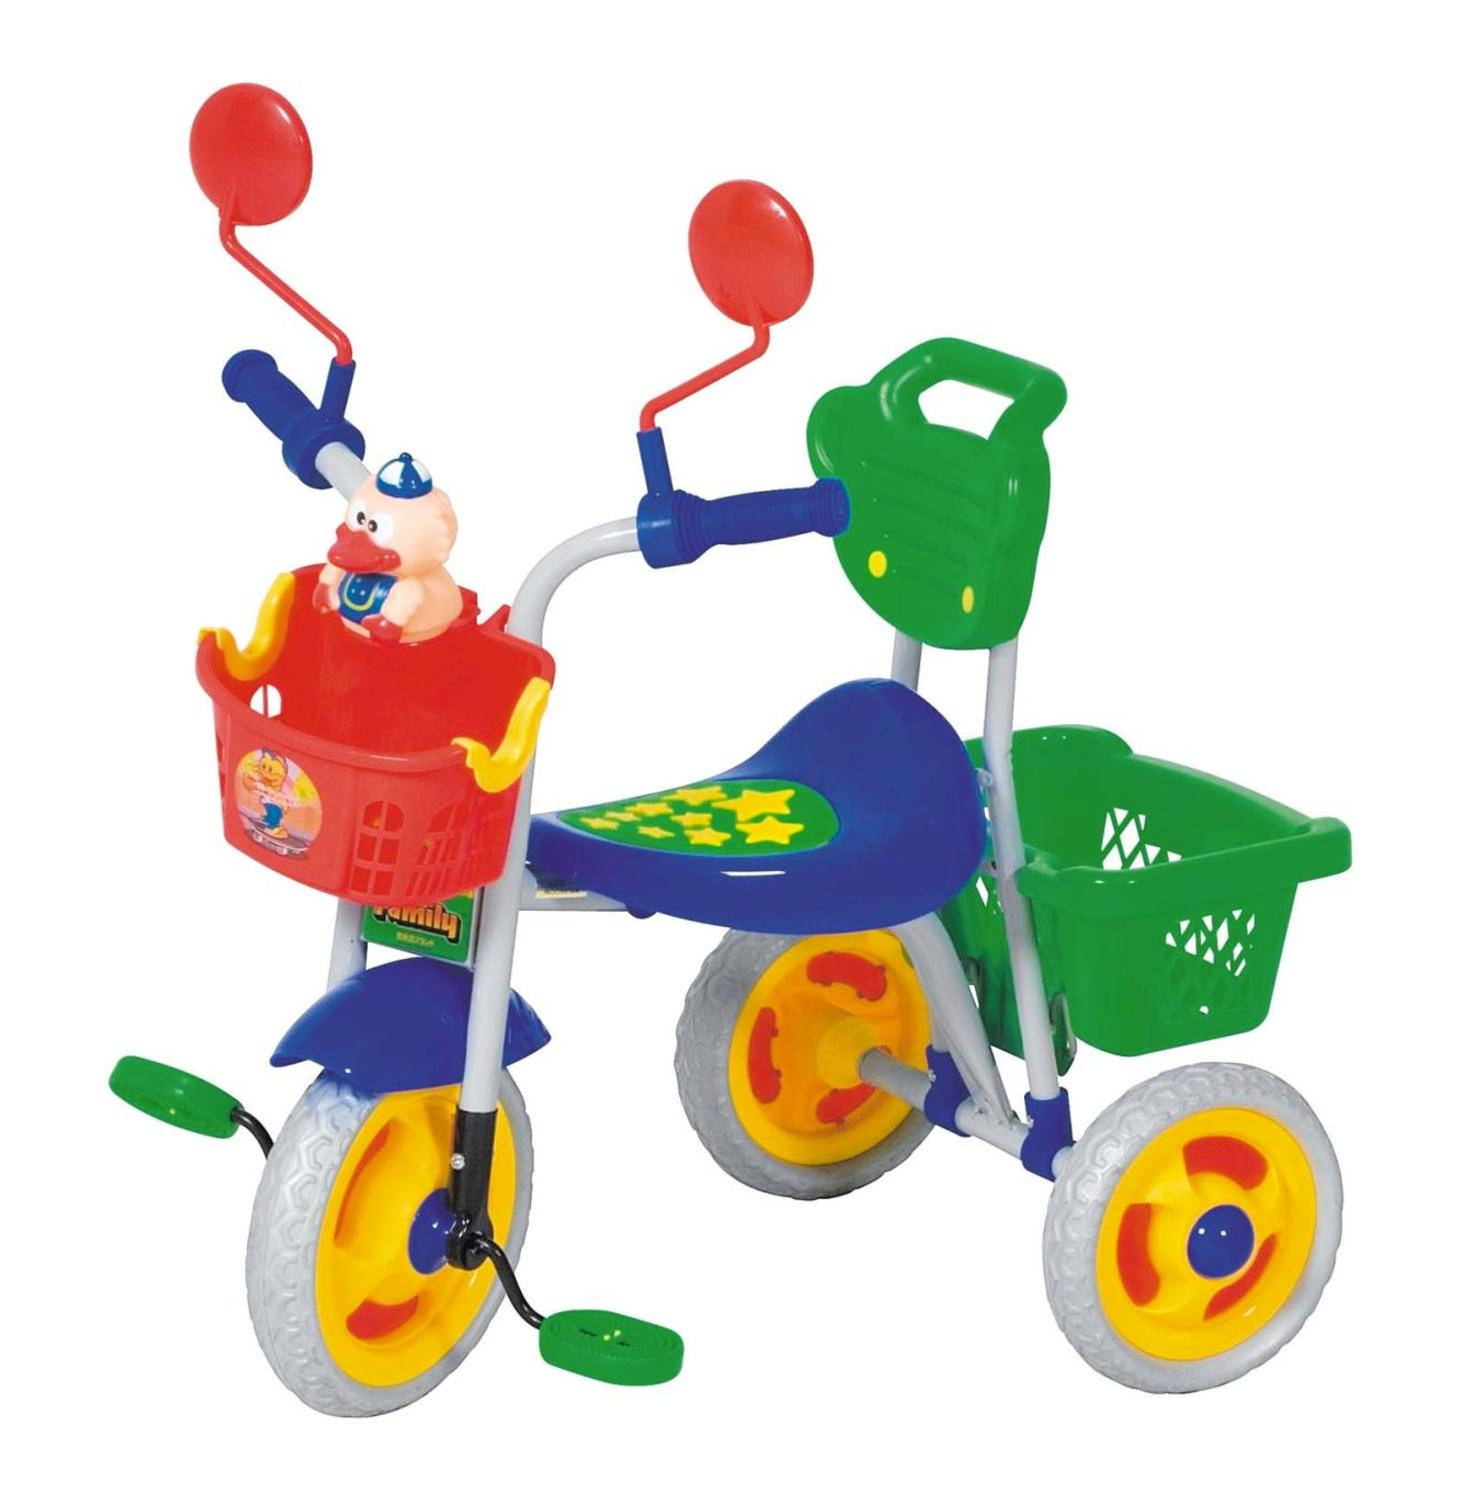 Kiddies Tricycle with 2 Baskets.